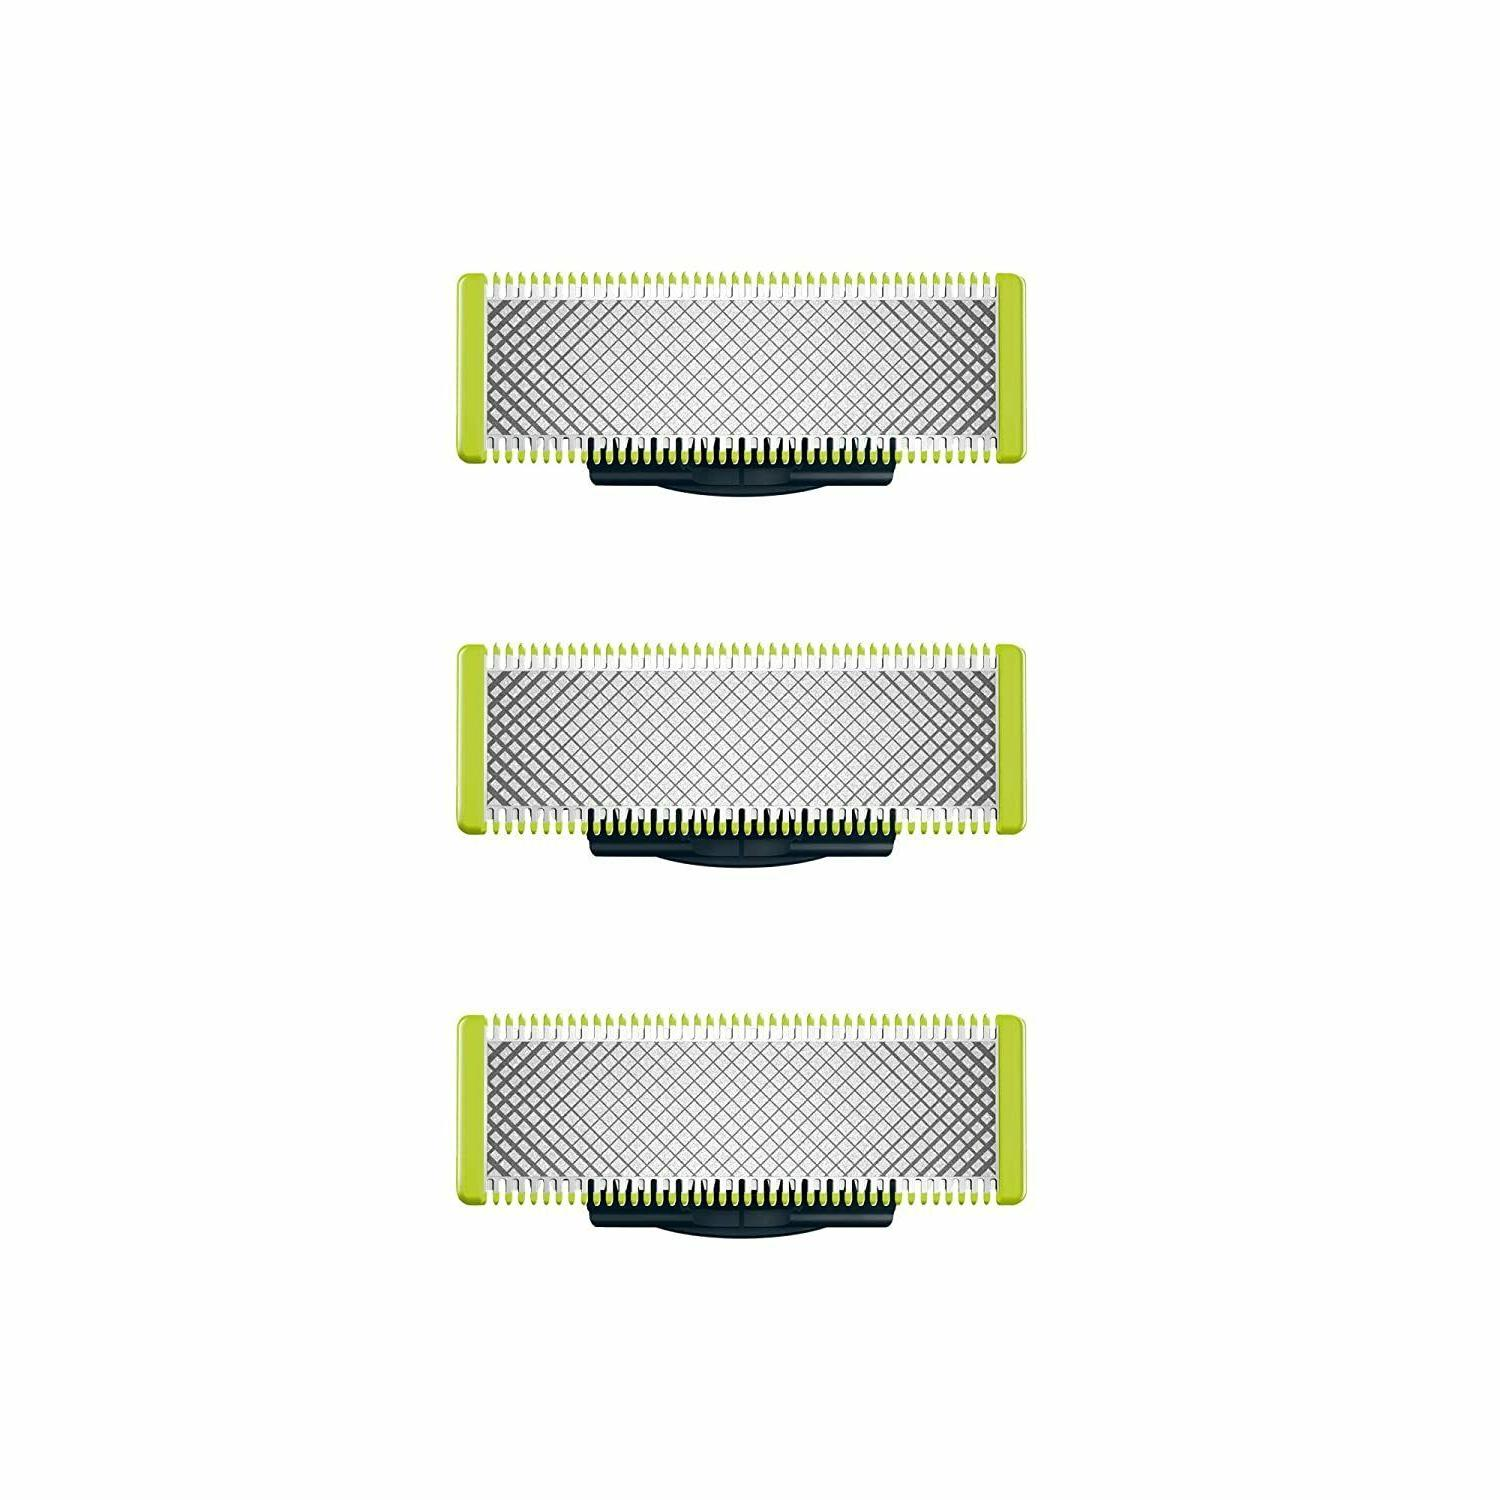 philips norelco qp230 80 oneblade replacement blades